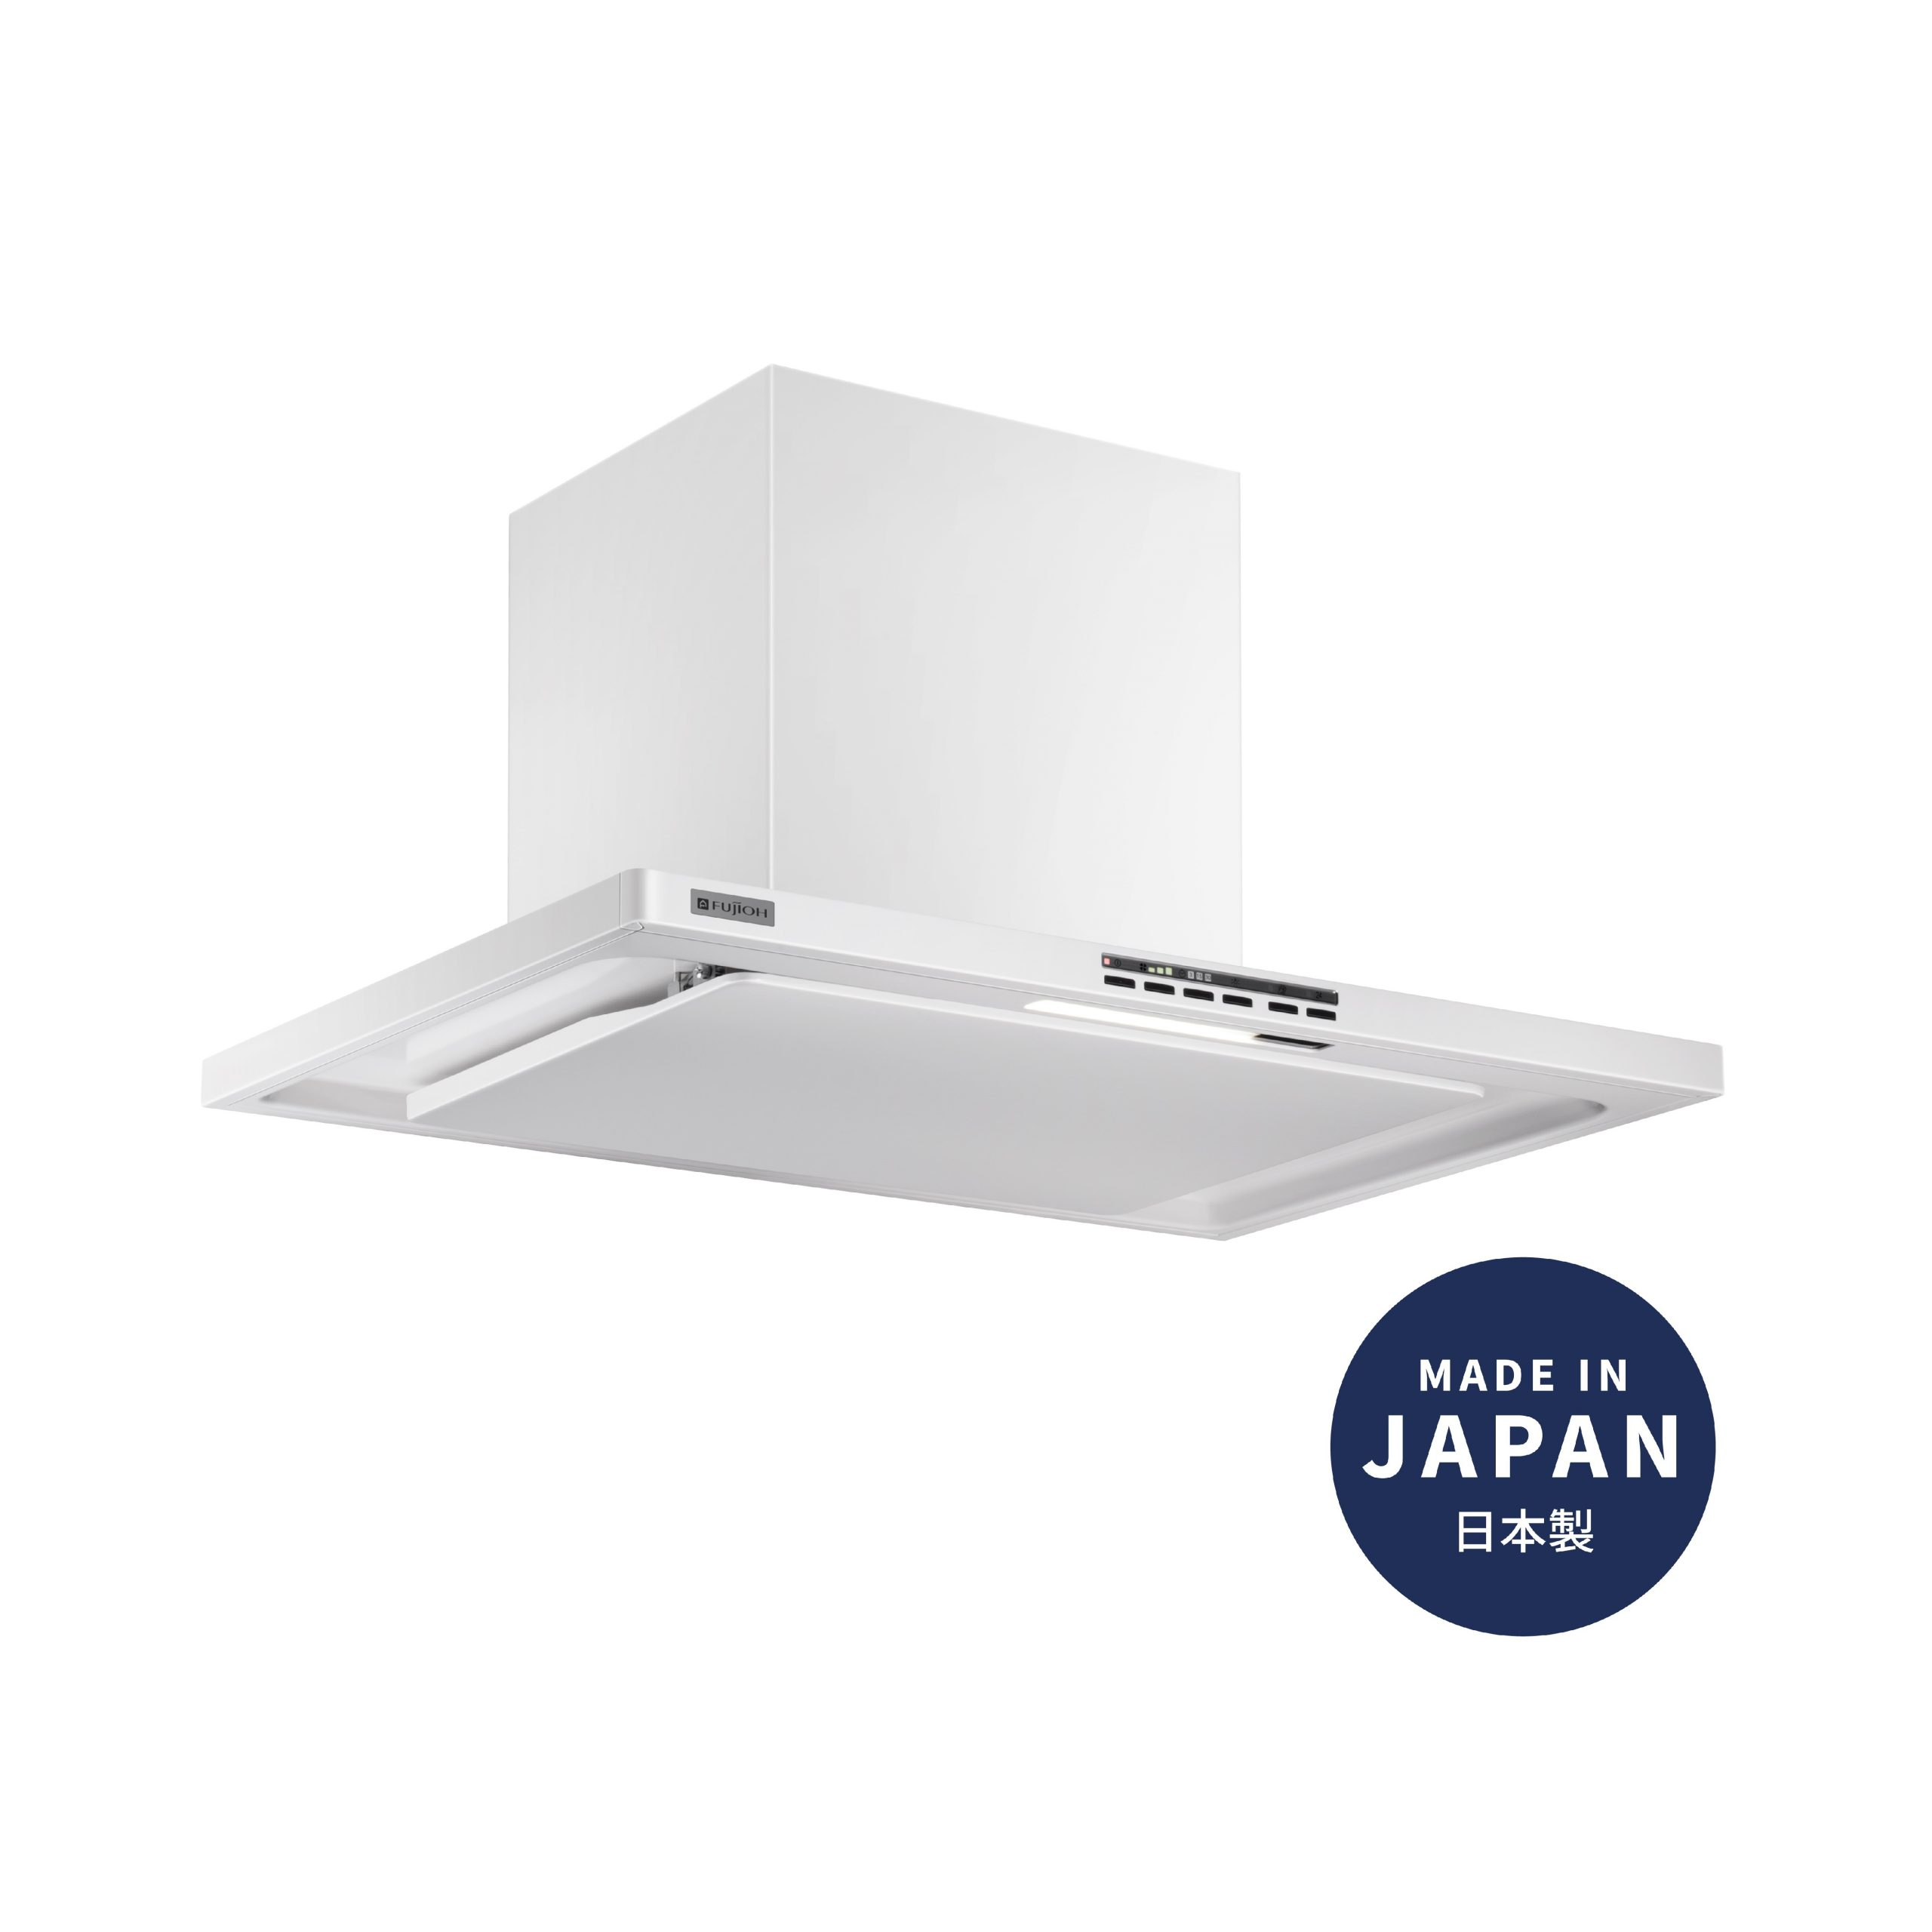 Made in Japan Chimney Cooker Hood with Oil Smasher